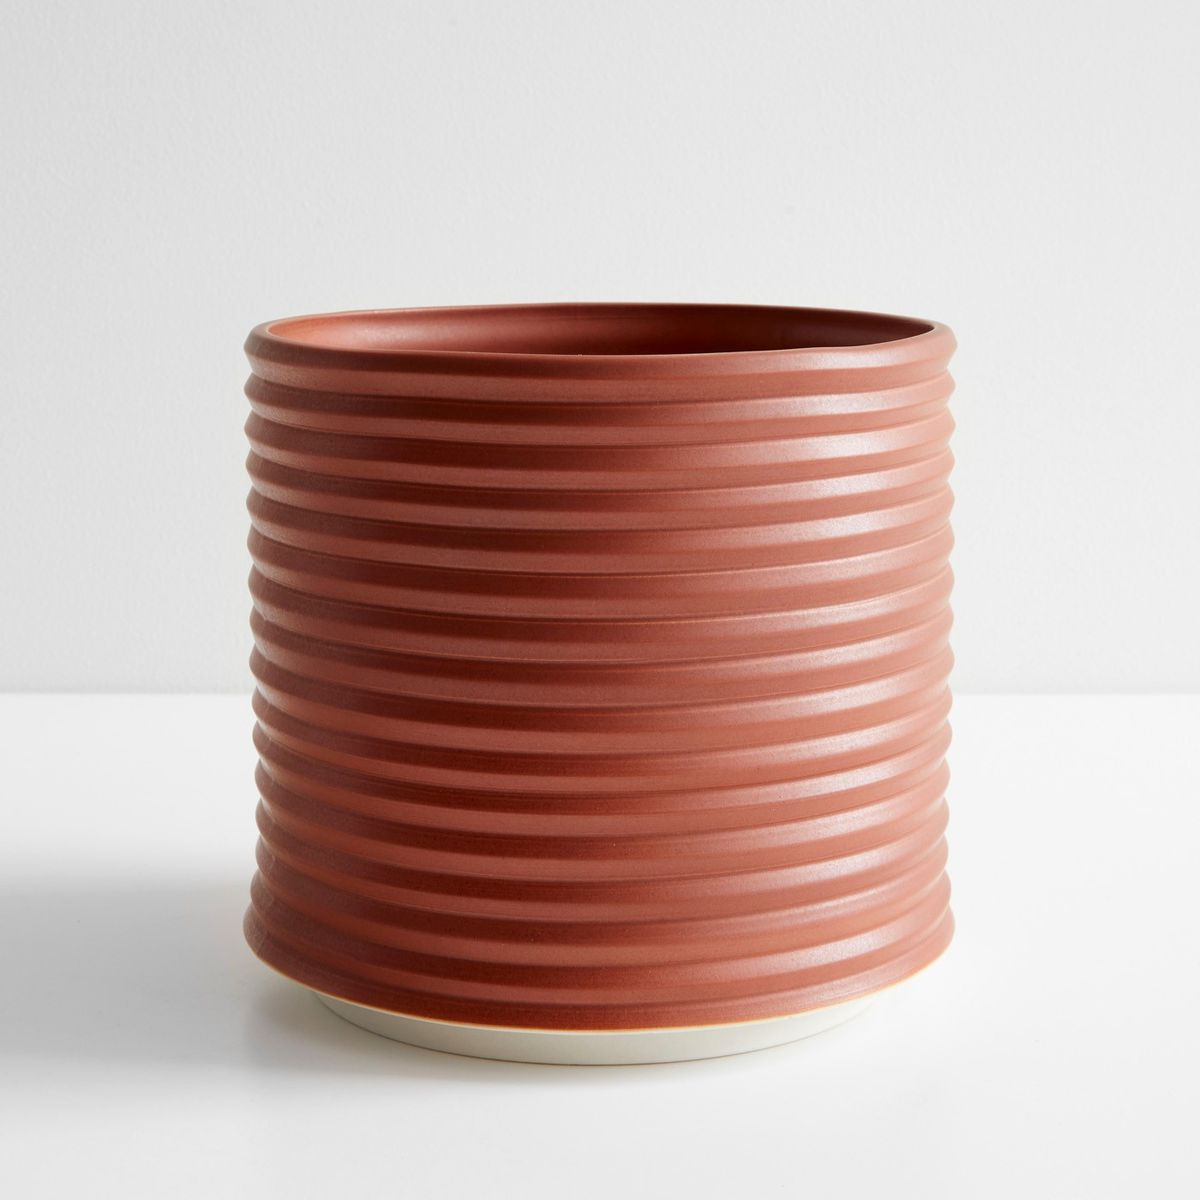 This light red, round planter is textured so that it looks like rings stacked on top of each other.